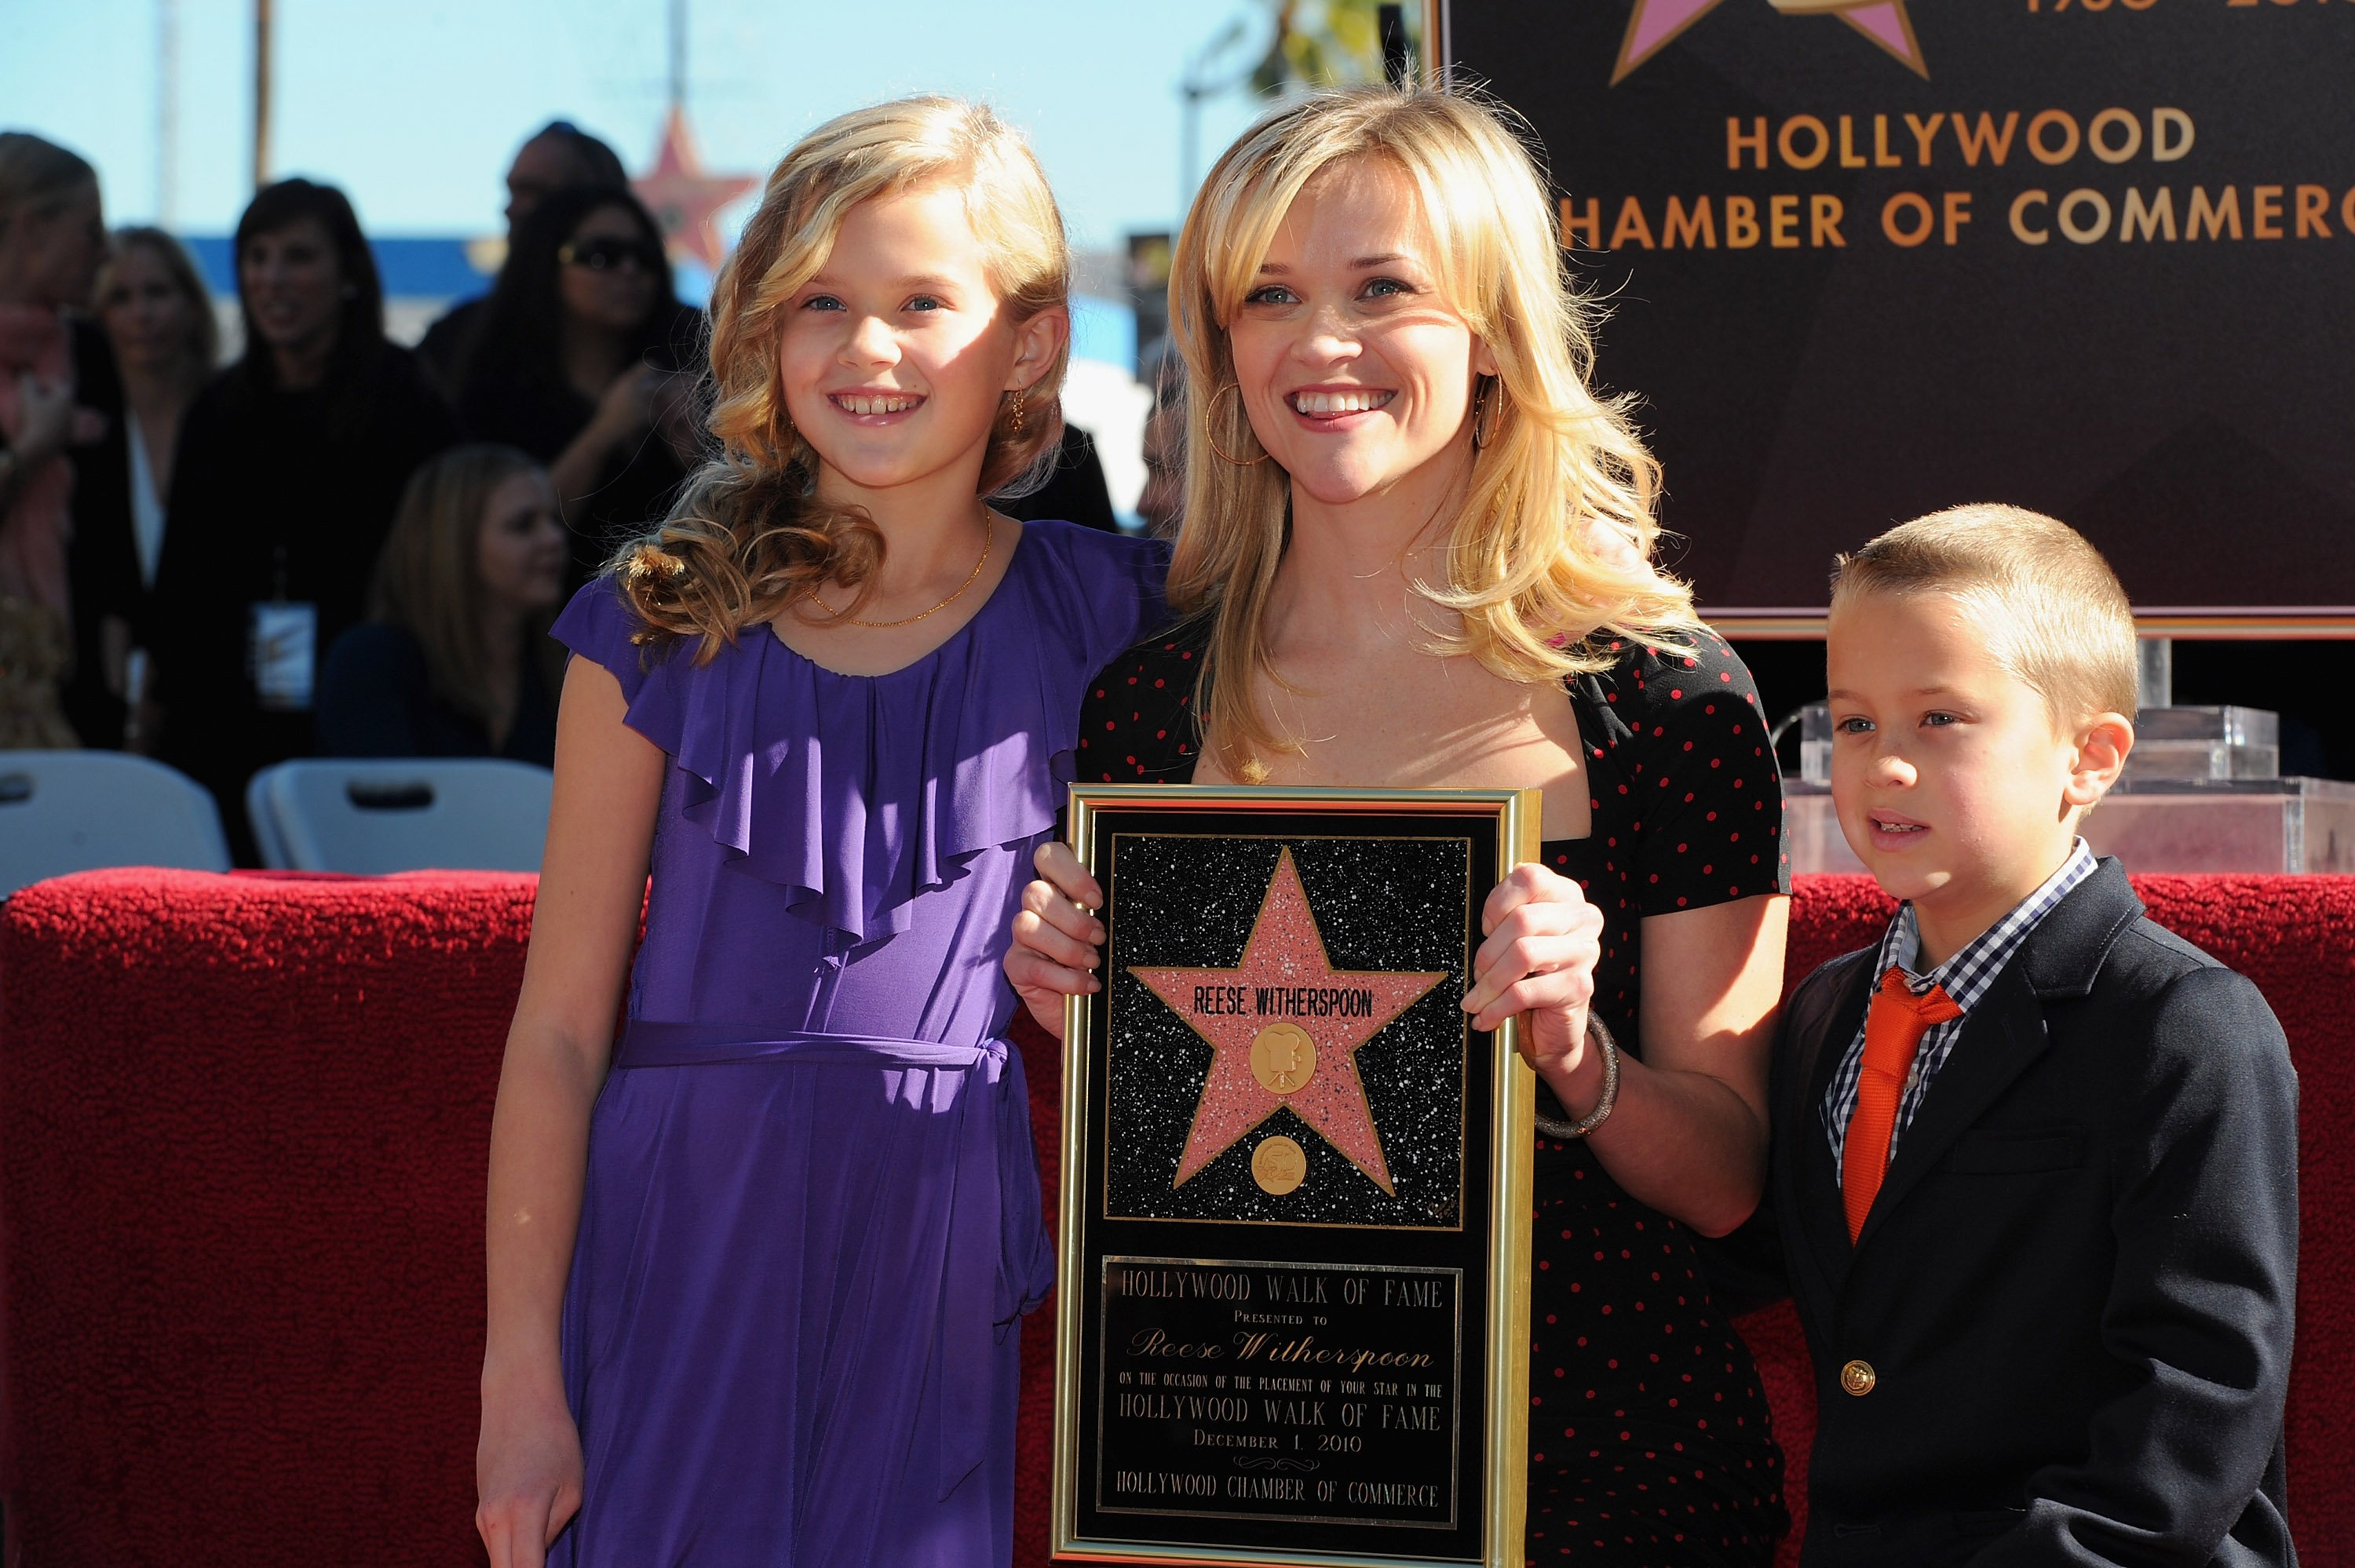 Reese Witherspoons with kids Ava and Deacon Phillip at the Hollywood Walk of Fame in Hollywood, California on December 1, 2010 | Photo: Getty Images